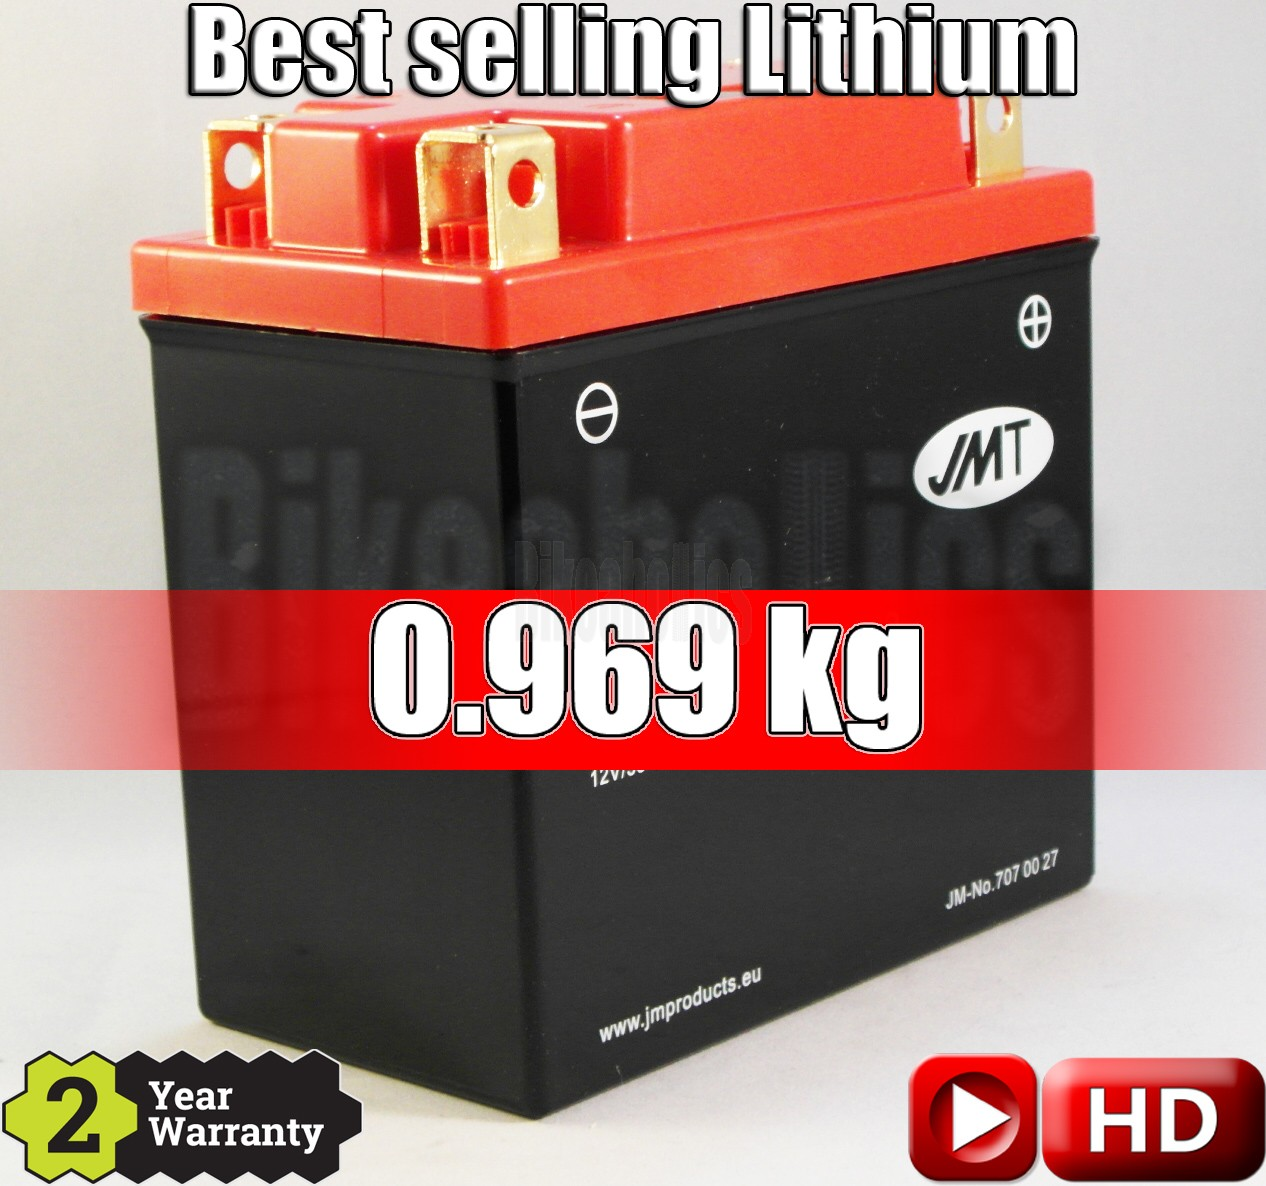 LITHIUM - Best Price - Motorcycle Battery YTX14AH-FP JMT SYB14L-B2 12N14-3A